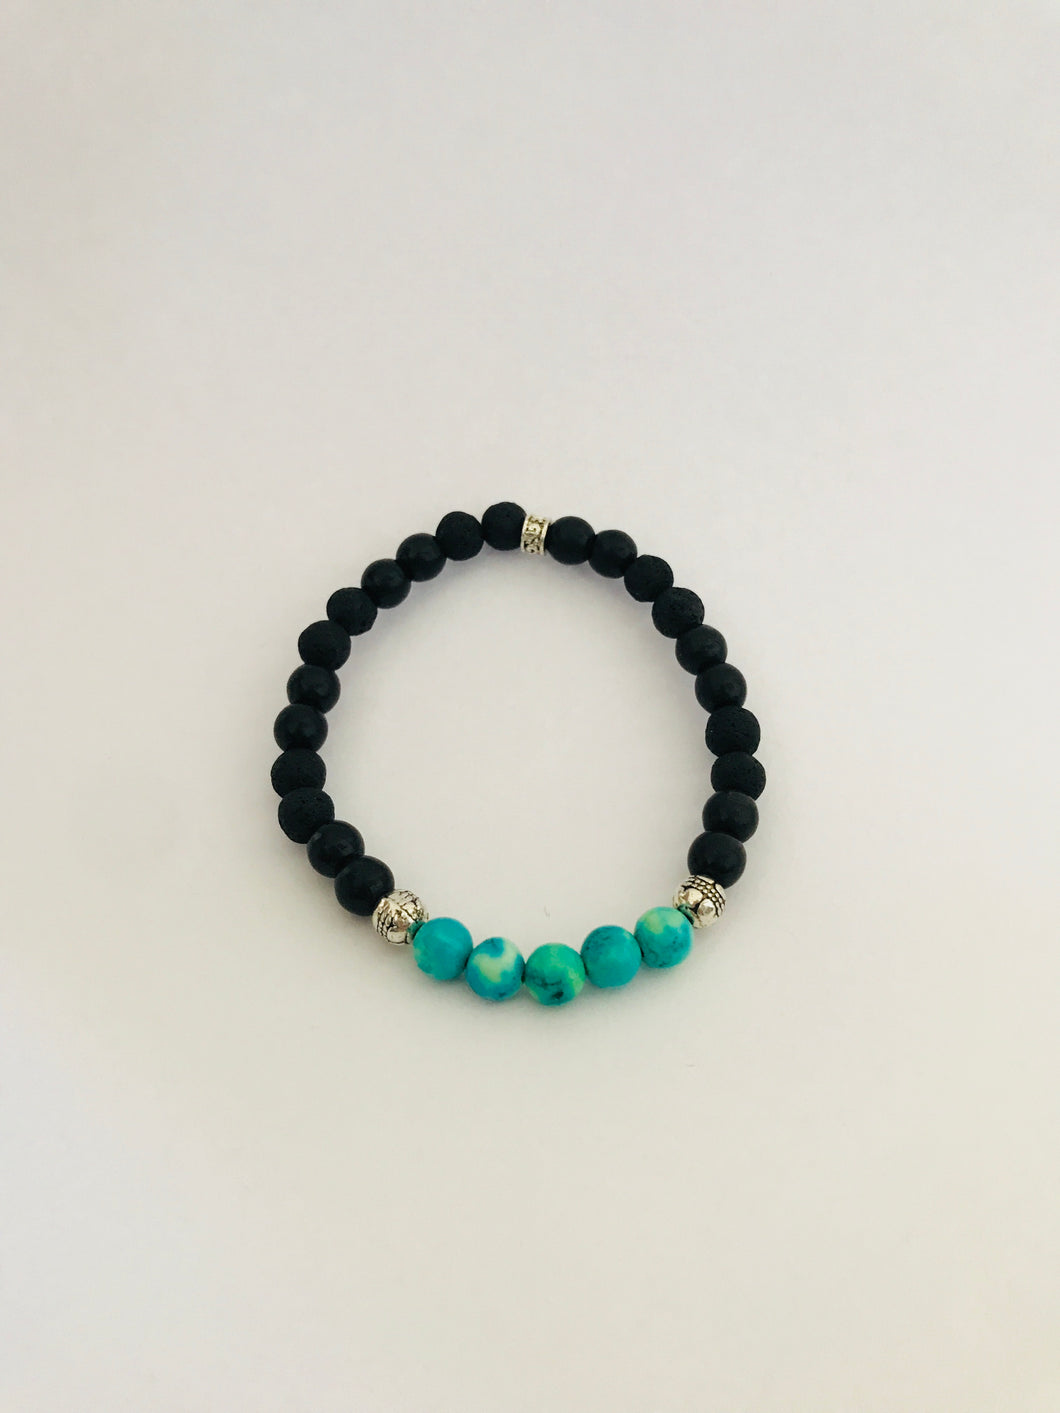 Lava bead, Black Howlite and Turquoise Diffuser Bracelet